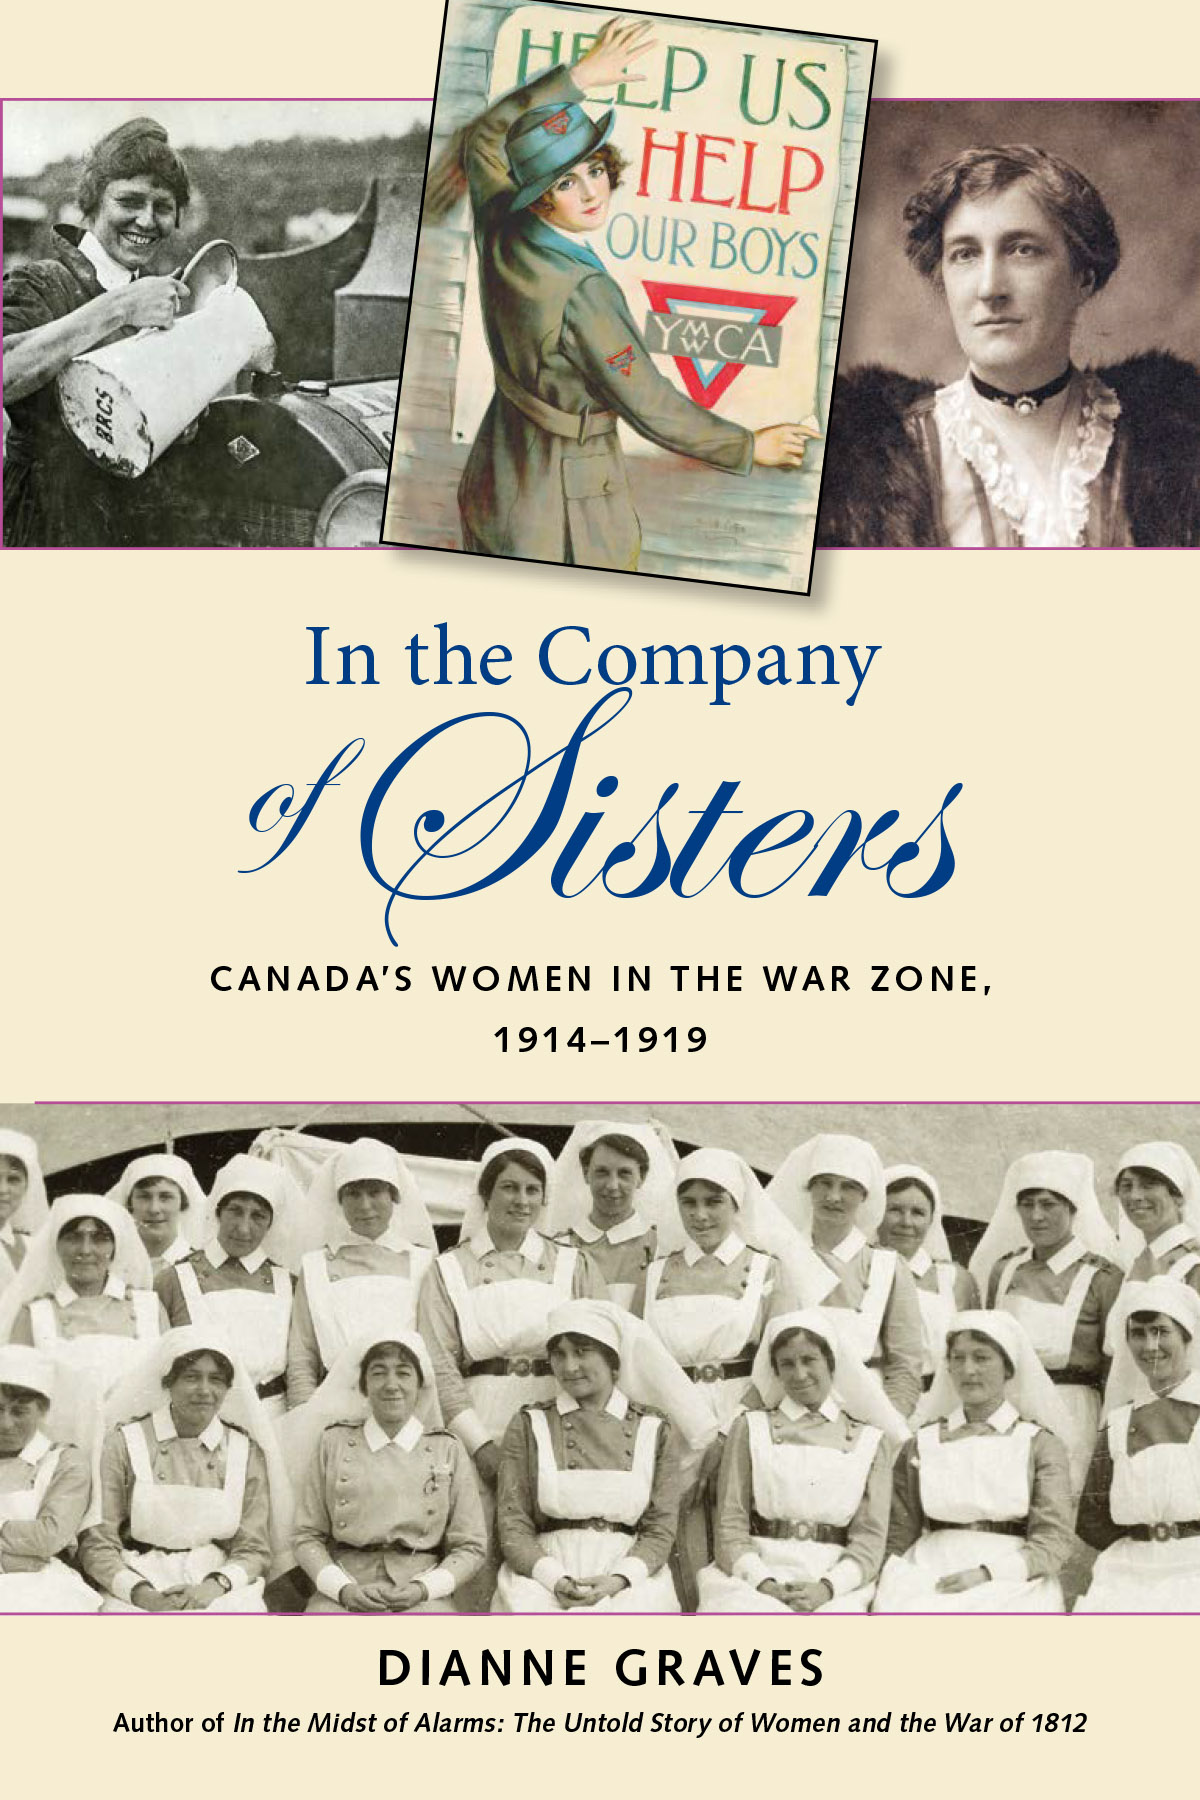 In the Company of Sisters: Canada's Women in the War Zone, 1914-1919